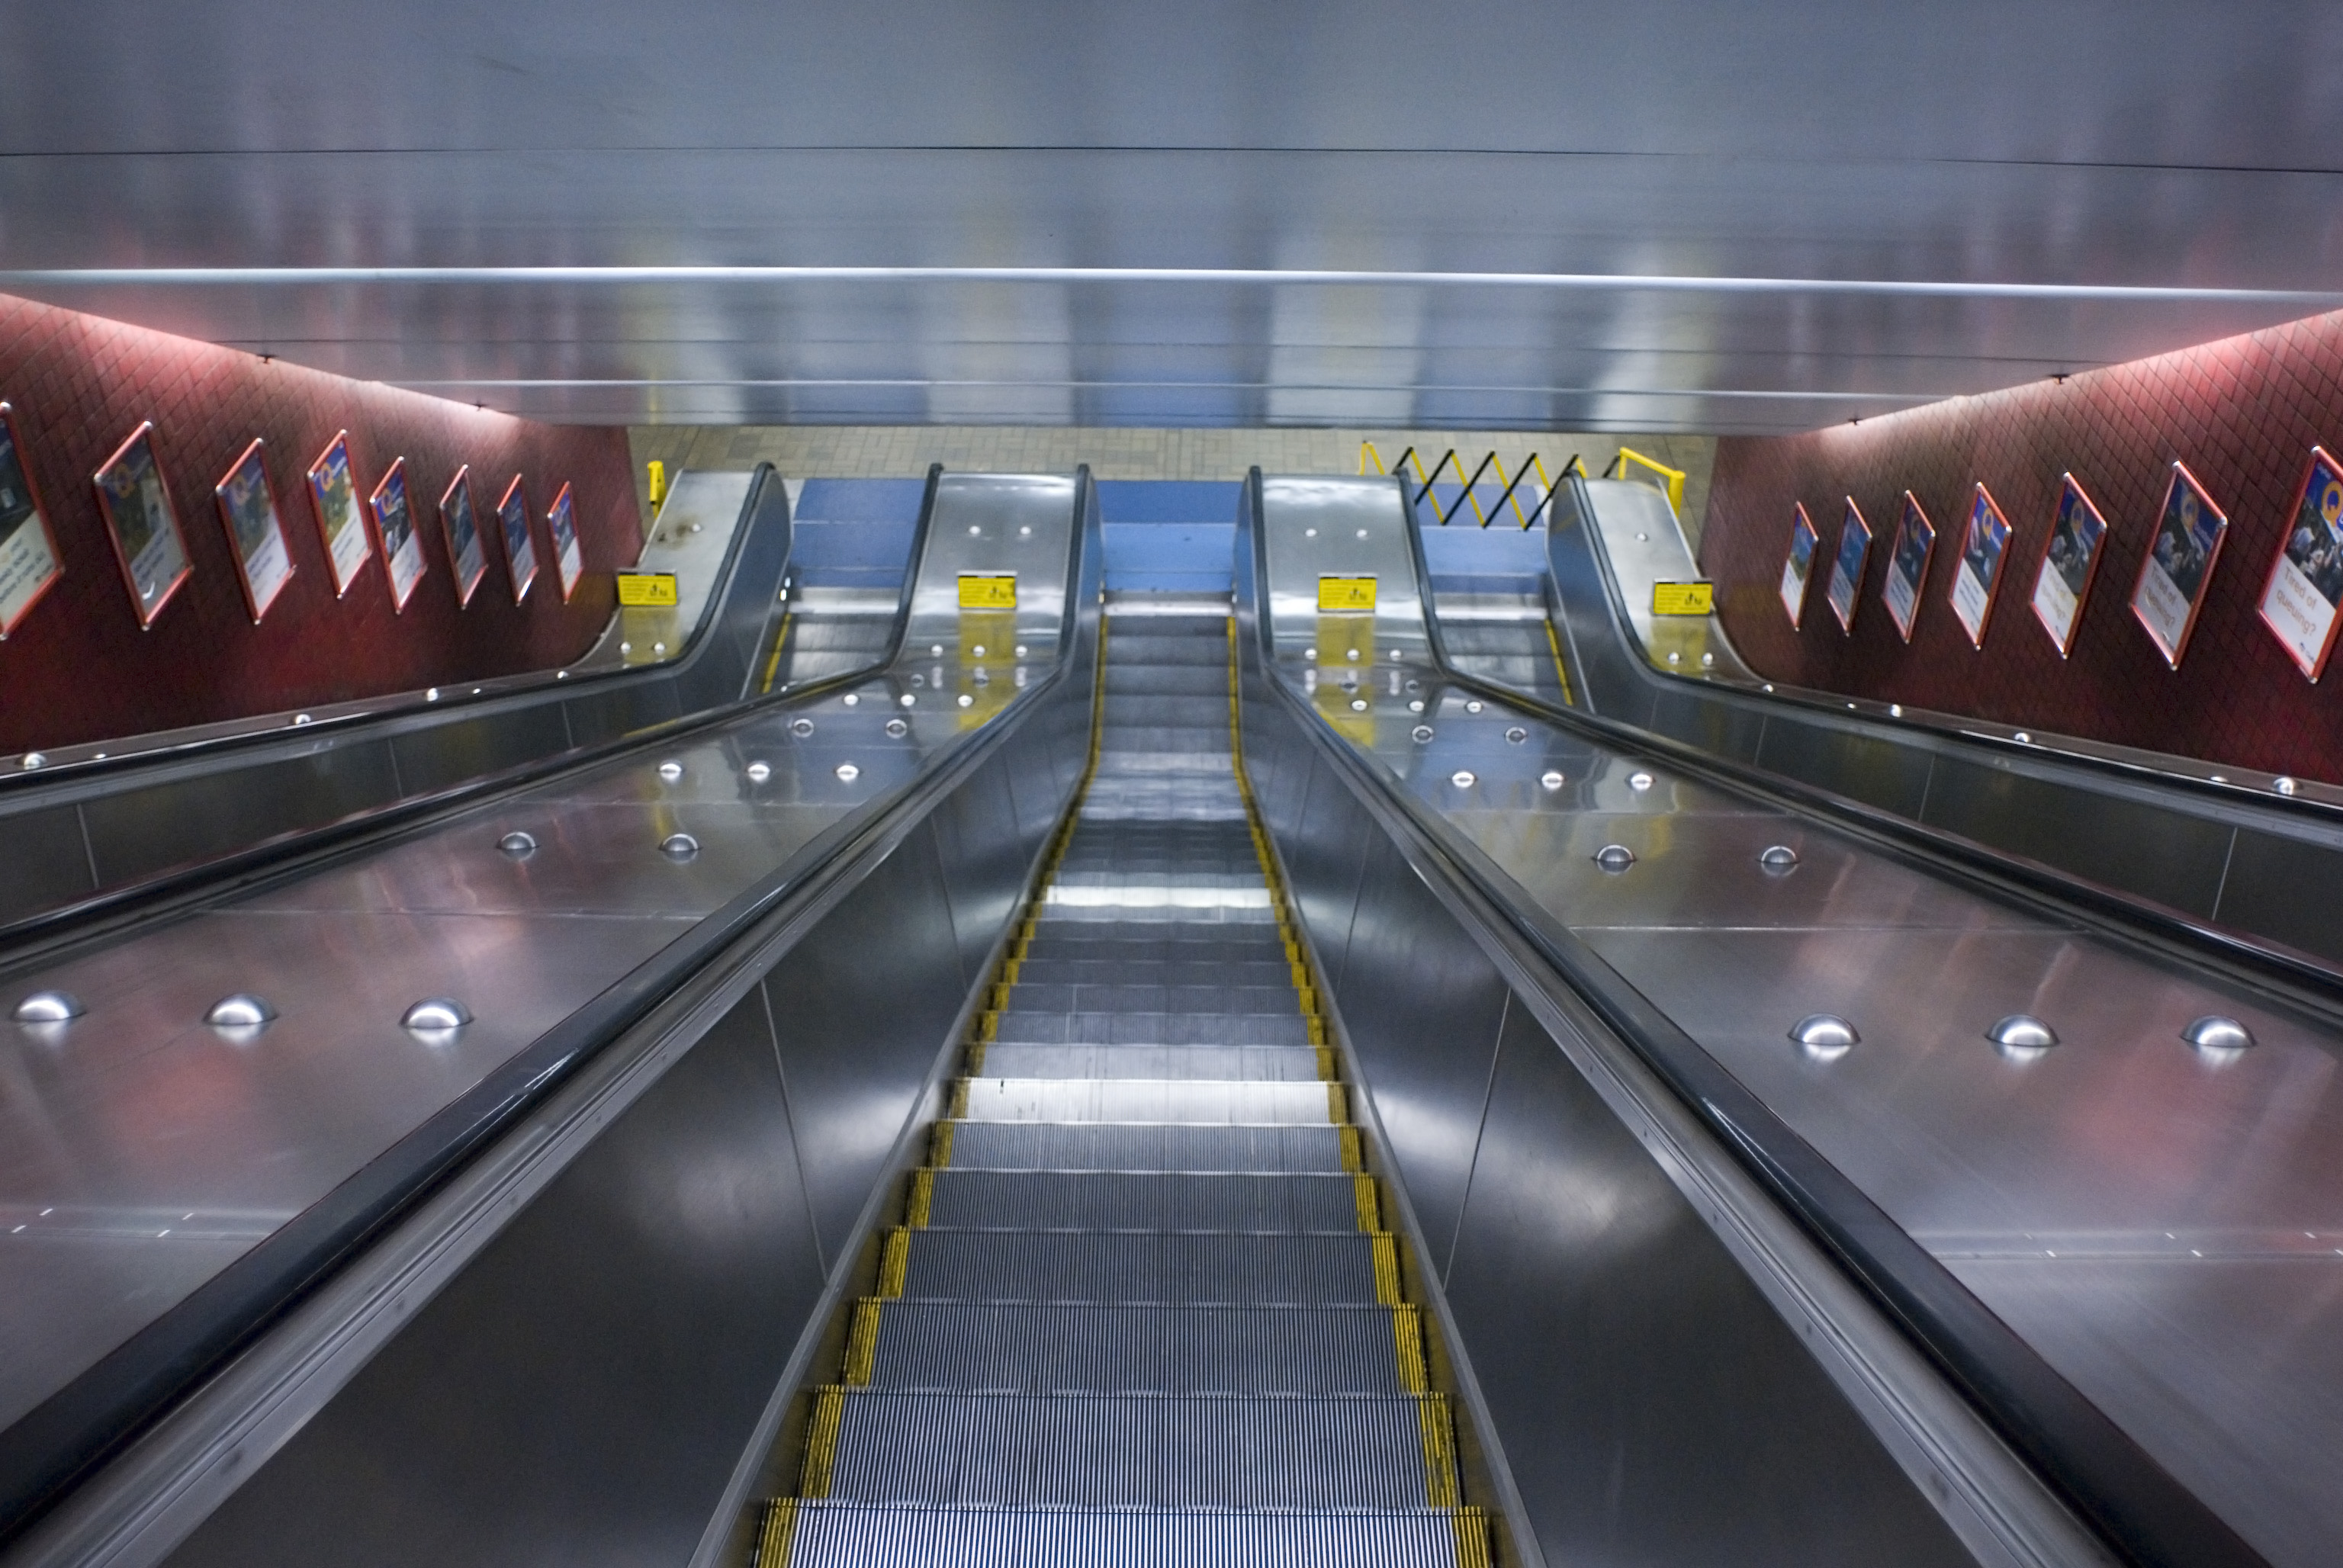 sydney underground railway station escalators